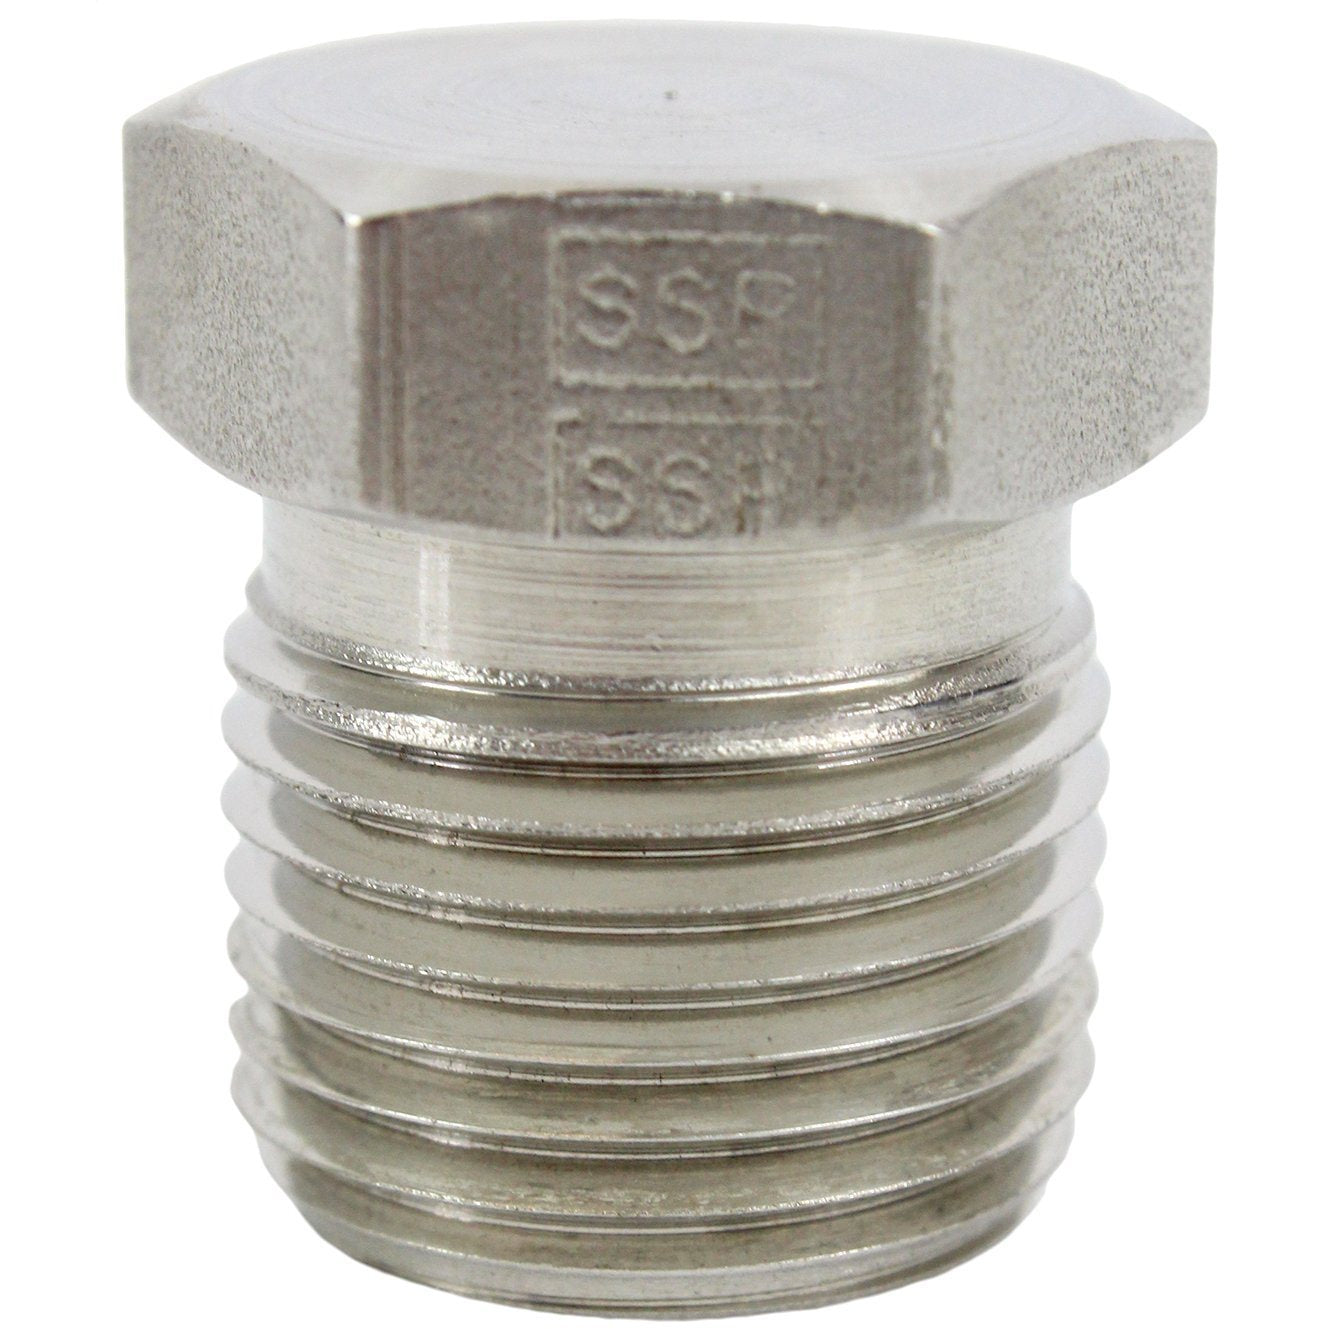 SSP - Pipe Plug Shop All Categories SSP Corporation 1/4-inch